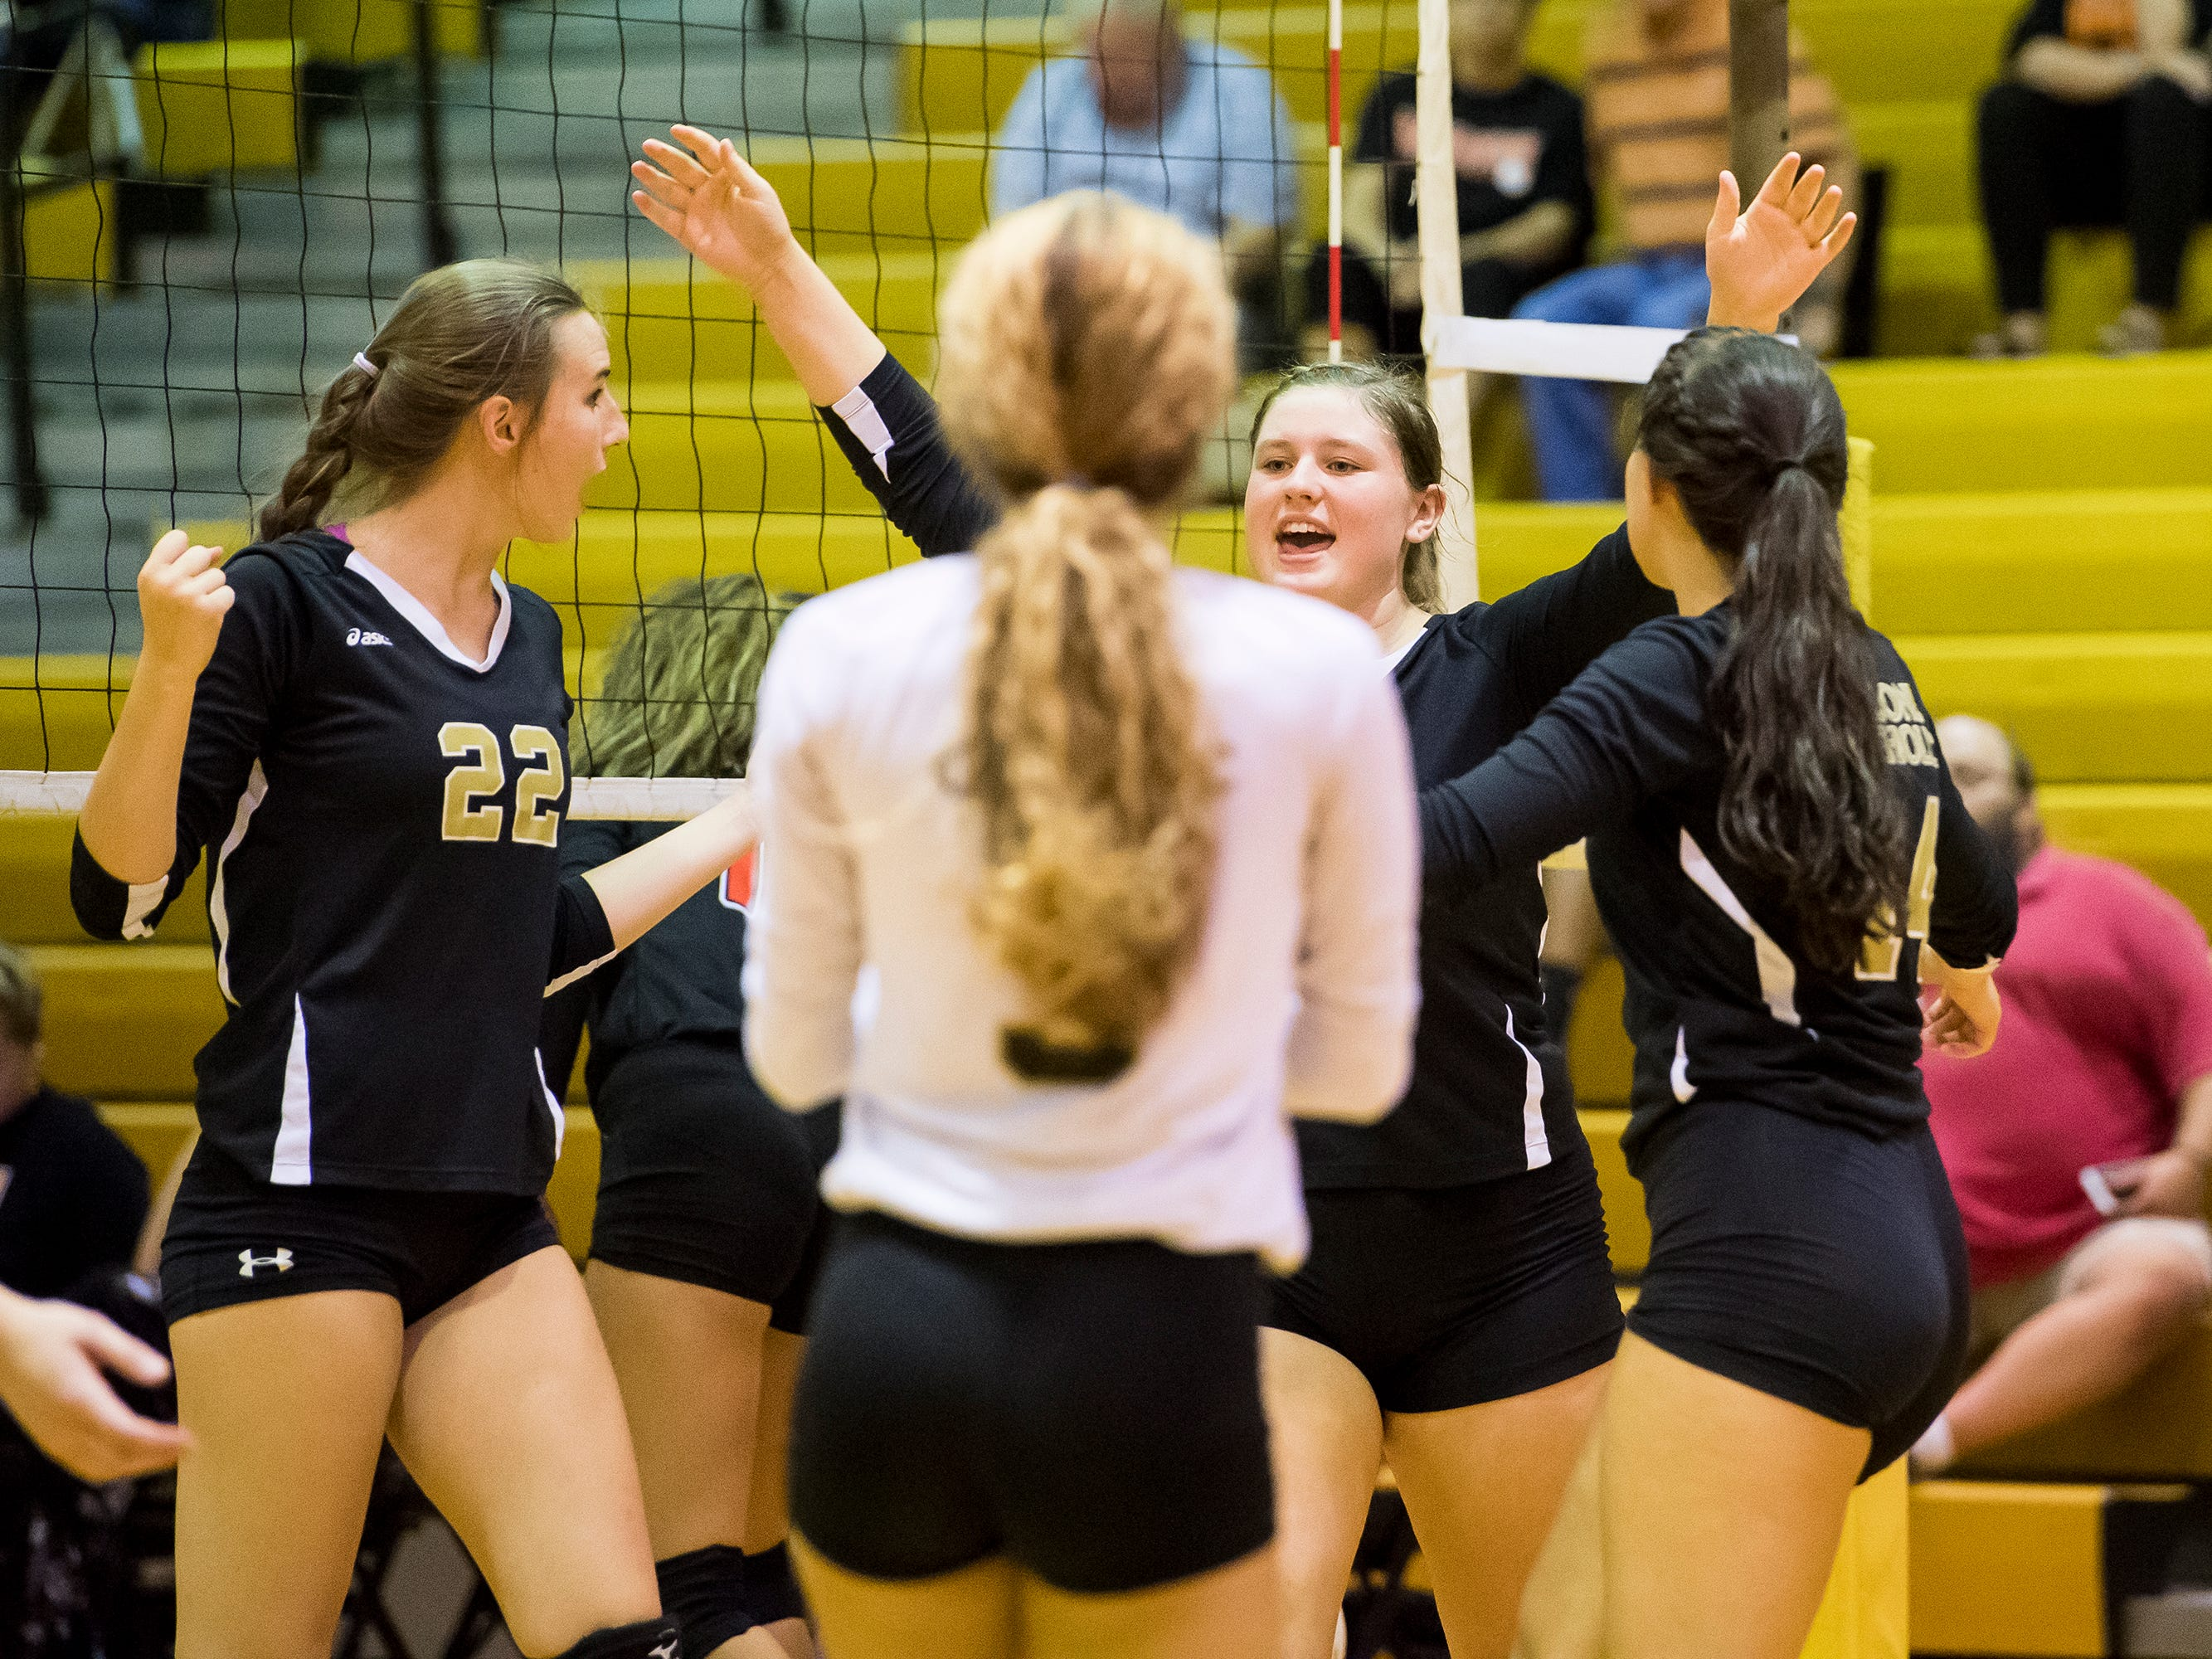 Delone Catholic players celebrate a point during play against Hanover on Tuesday, September 18, 2018. The Squirettes swept the Hawkettes 25-16, 25-19, 25-14.